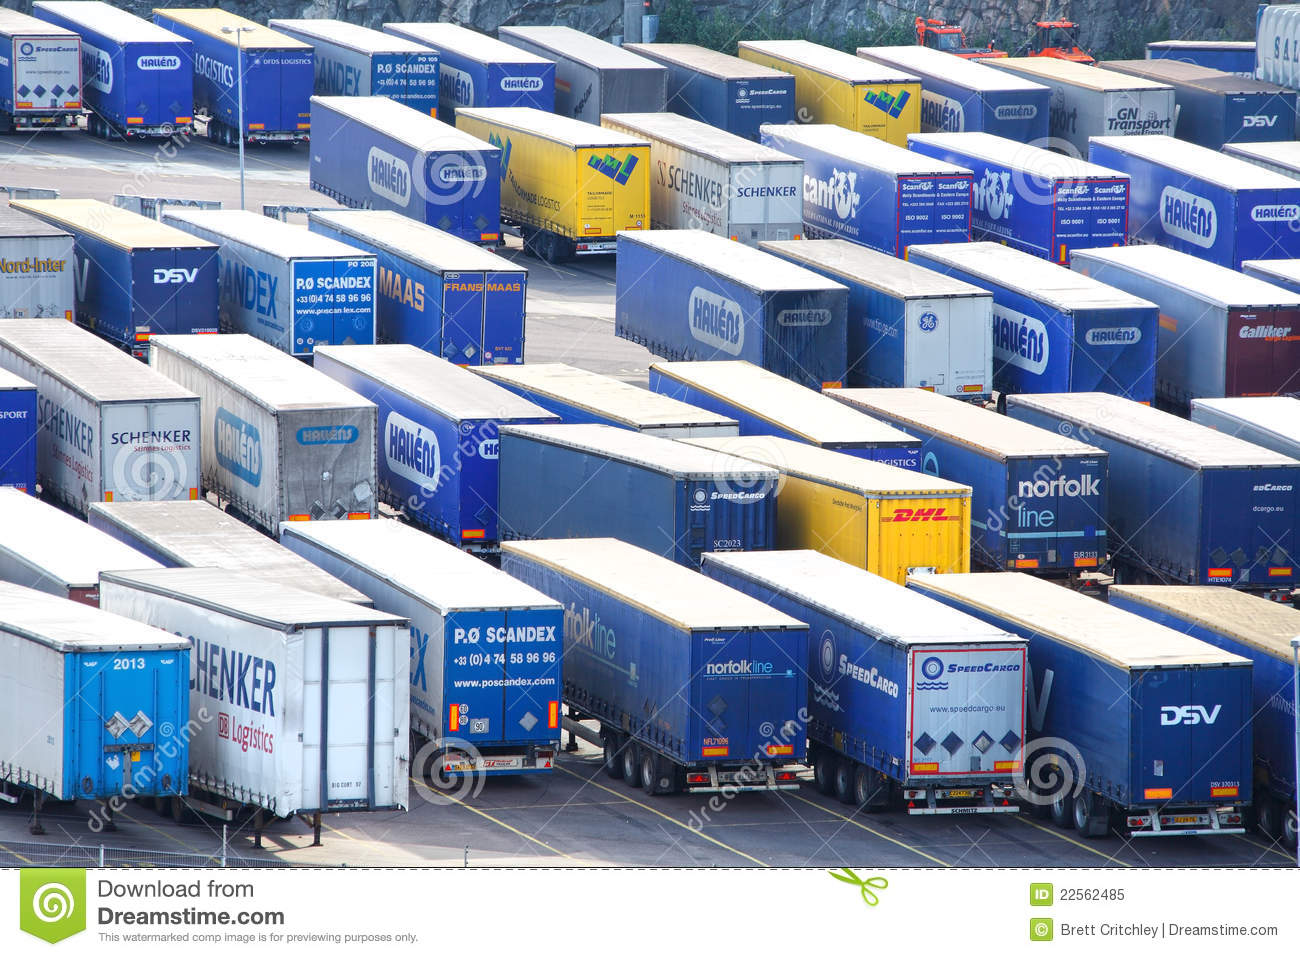 Import and export trailers